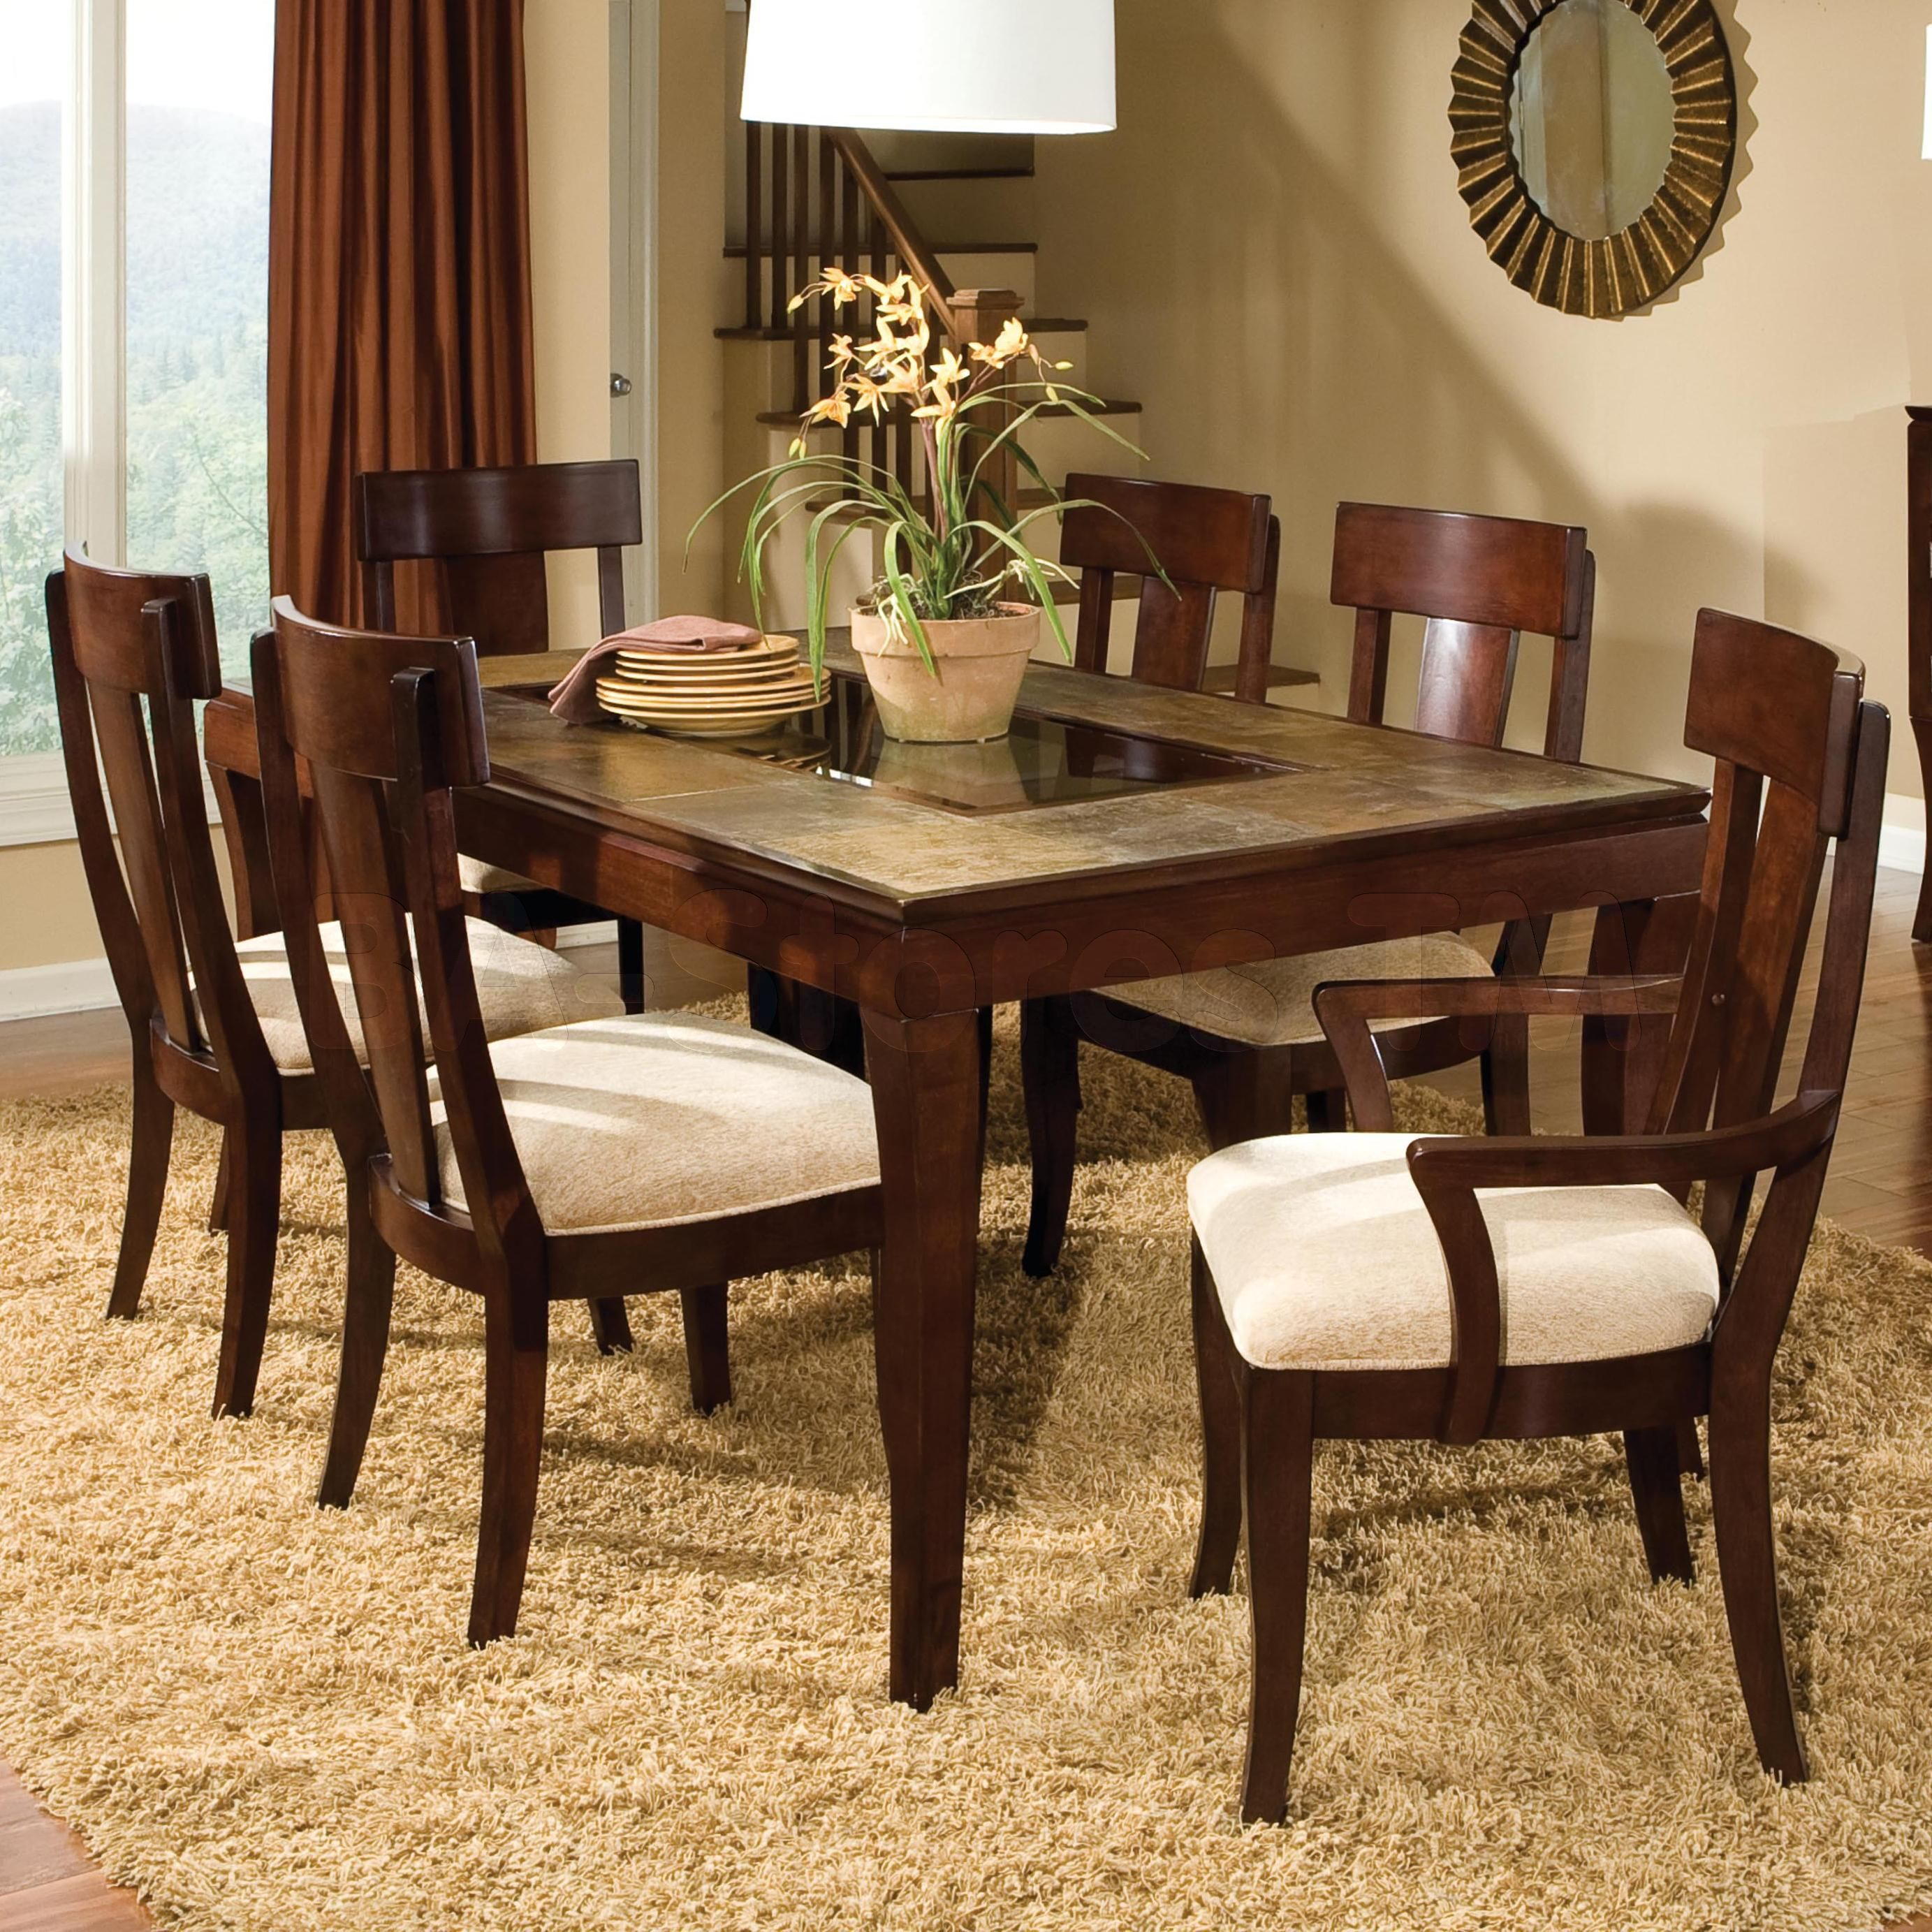 Laguna 7 Pcs Dining Room Set Table 4 Side Chairs And 2 Arm Interesting Dining Room Table And Chairs For 4 Design Inspiration